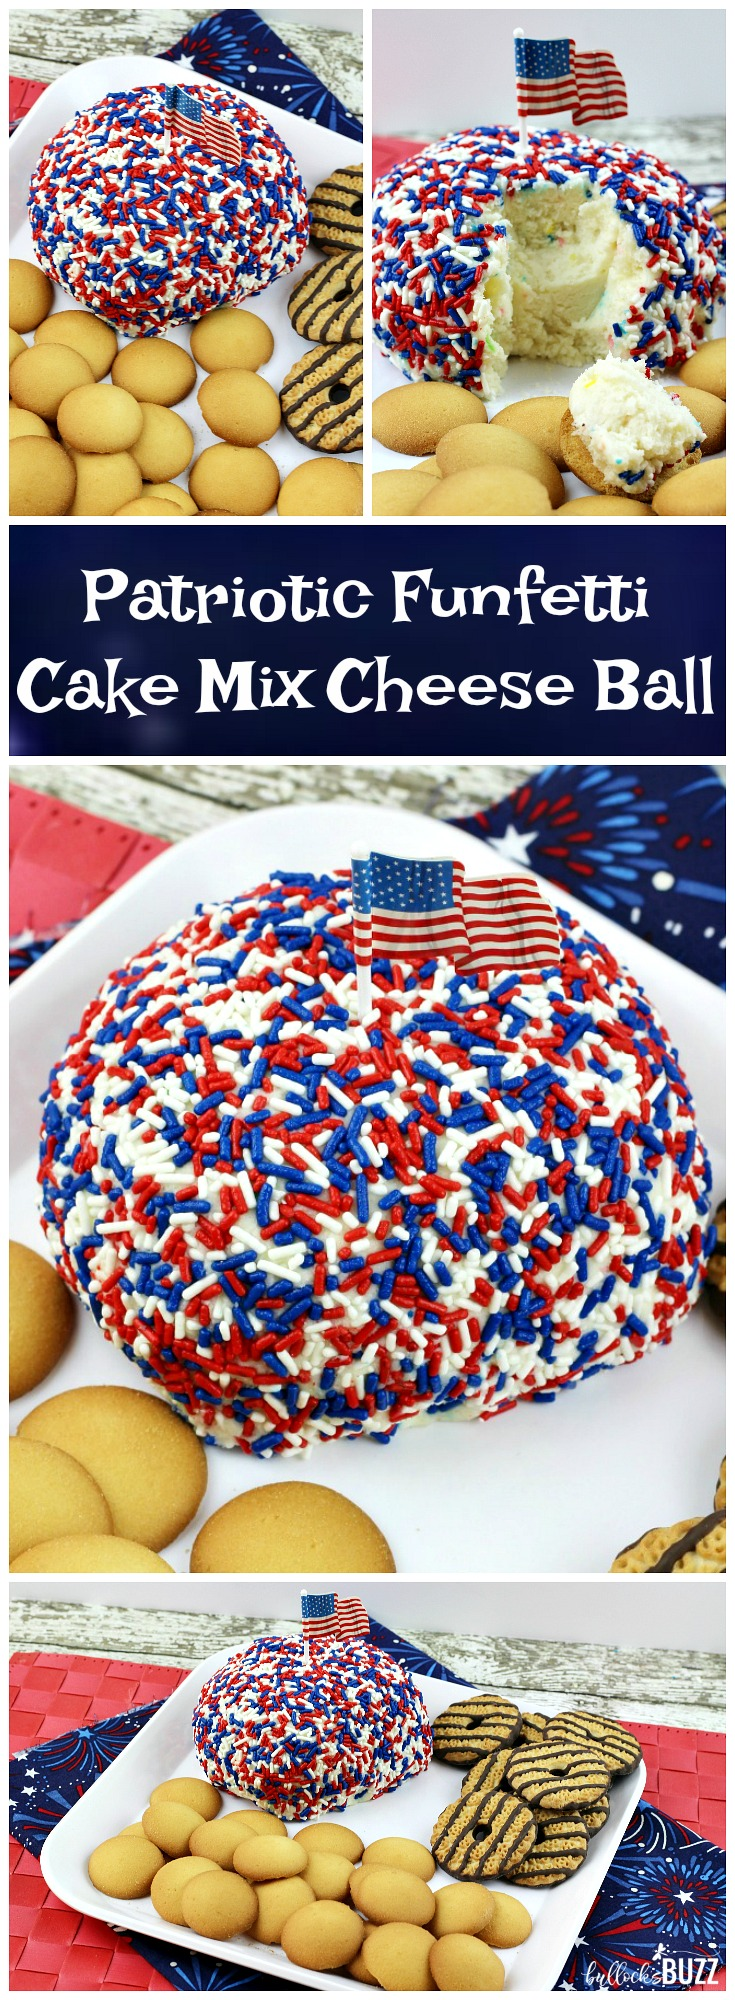 Add some sweetness to your 4th of July holiday celebration with this easy-to-make, no bake patriotic recipe! Colorful Funfetti cake mix is shaped into a ball, dipped in red, white and blue jimmies, then served as a dip in this deliciously sweetPatriotic Funfetti Cake Cheese Ball.